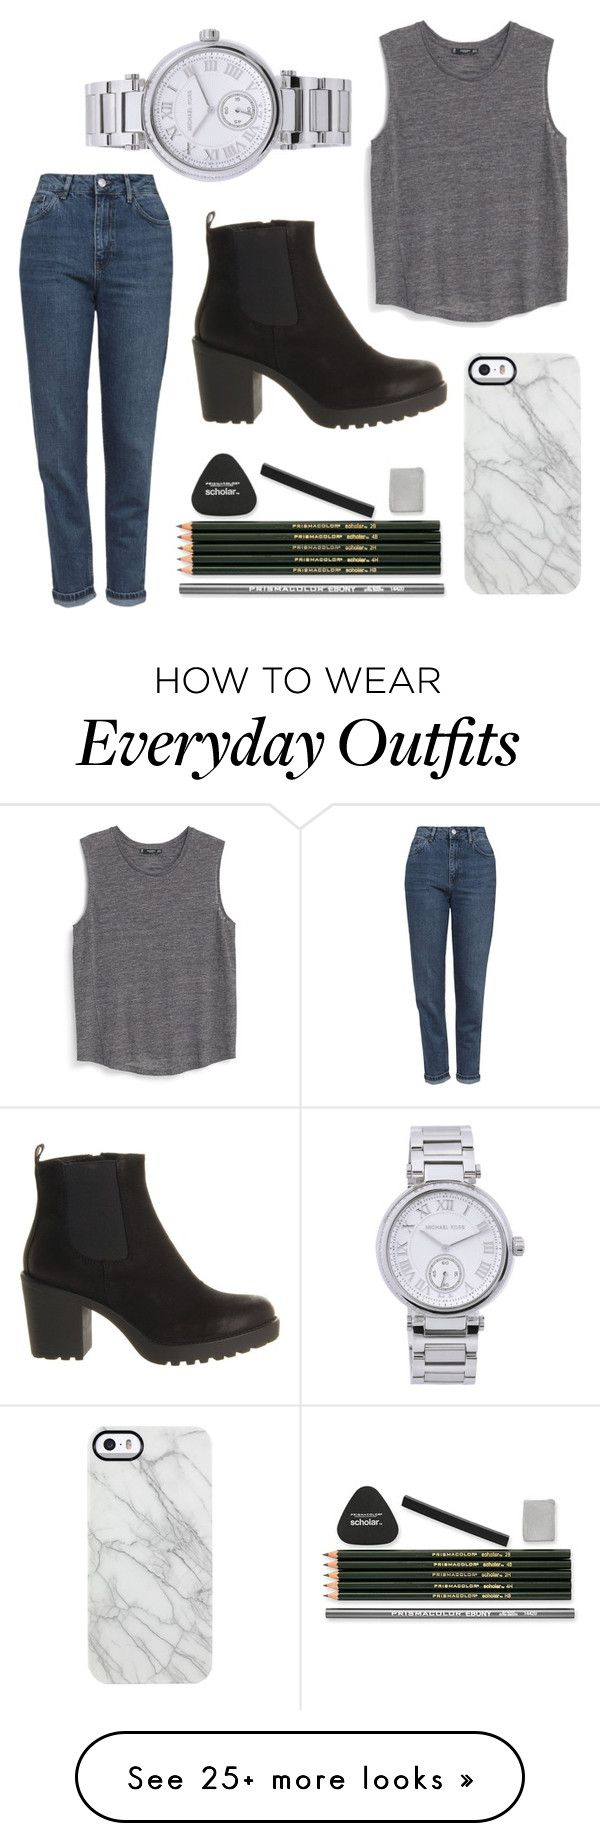 """""""Everyday outfit"""" by julie-nissen-1 on Polyvore featuring moda, Topshop, Vagabond, MANGO, Michael Kors, Uncommon, women's clothing, women, female y woman"""